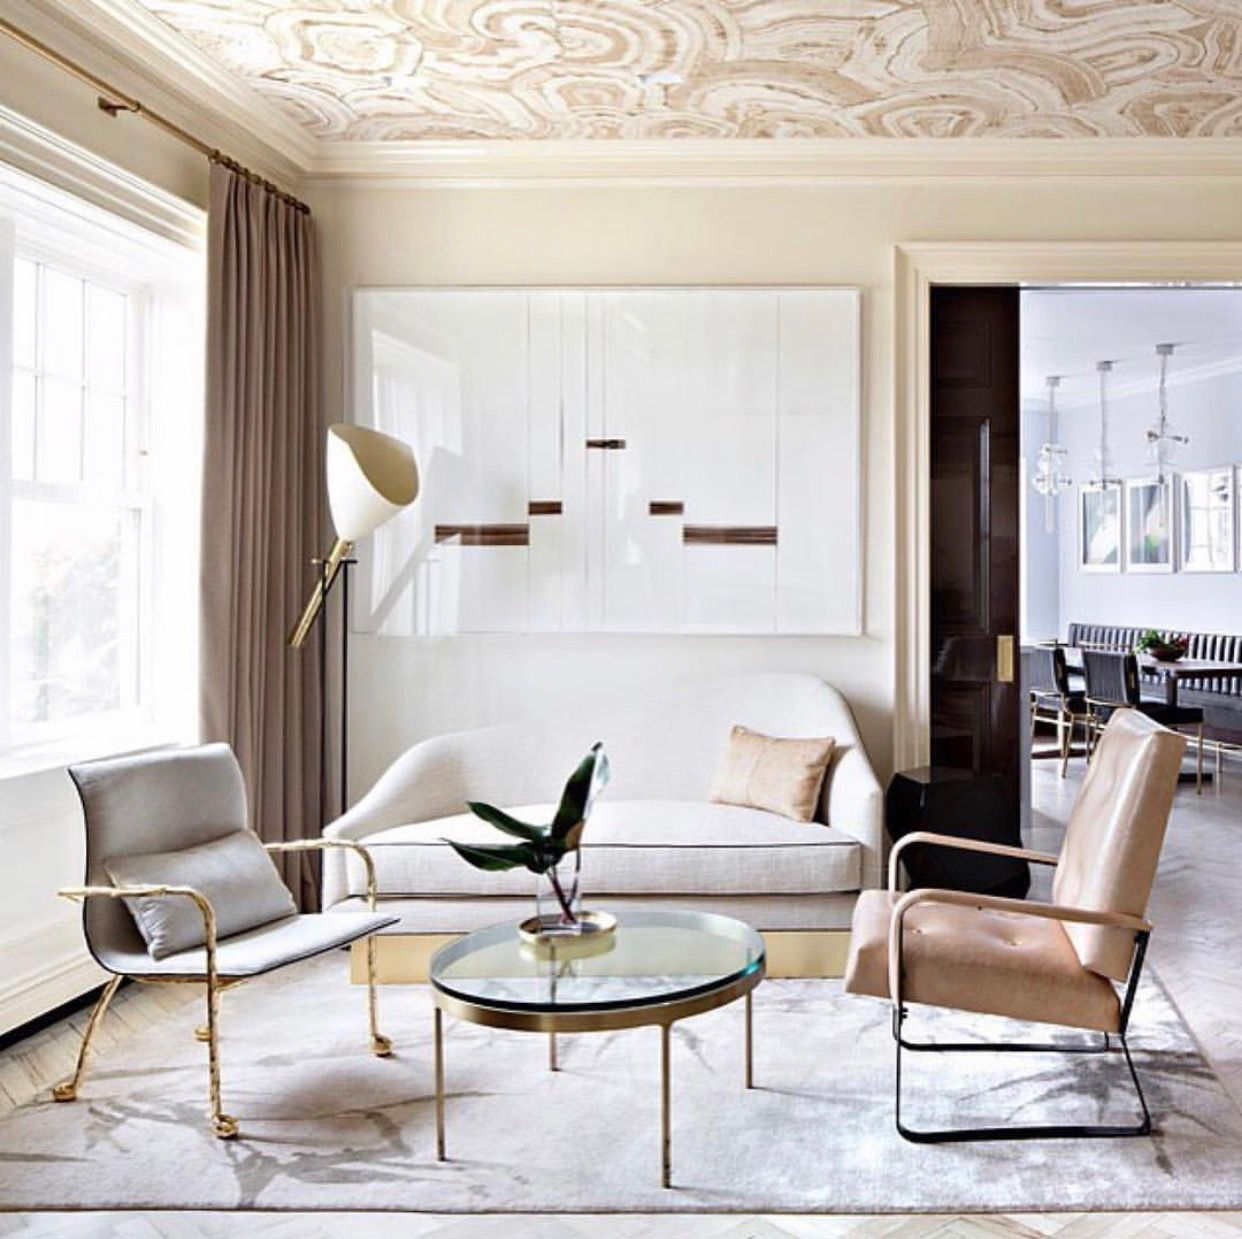 Everything except the ceiling | Interior Inspiration | Pinterest ...